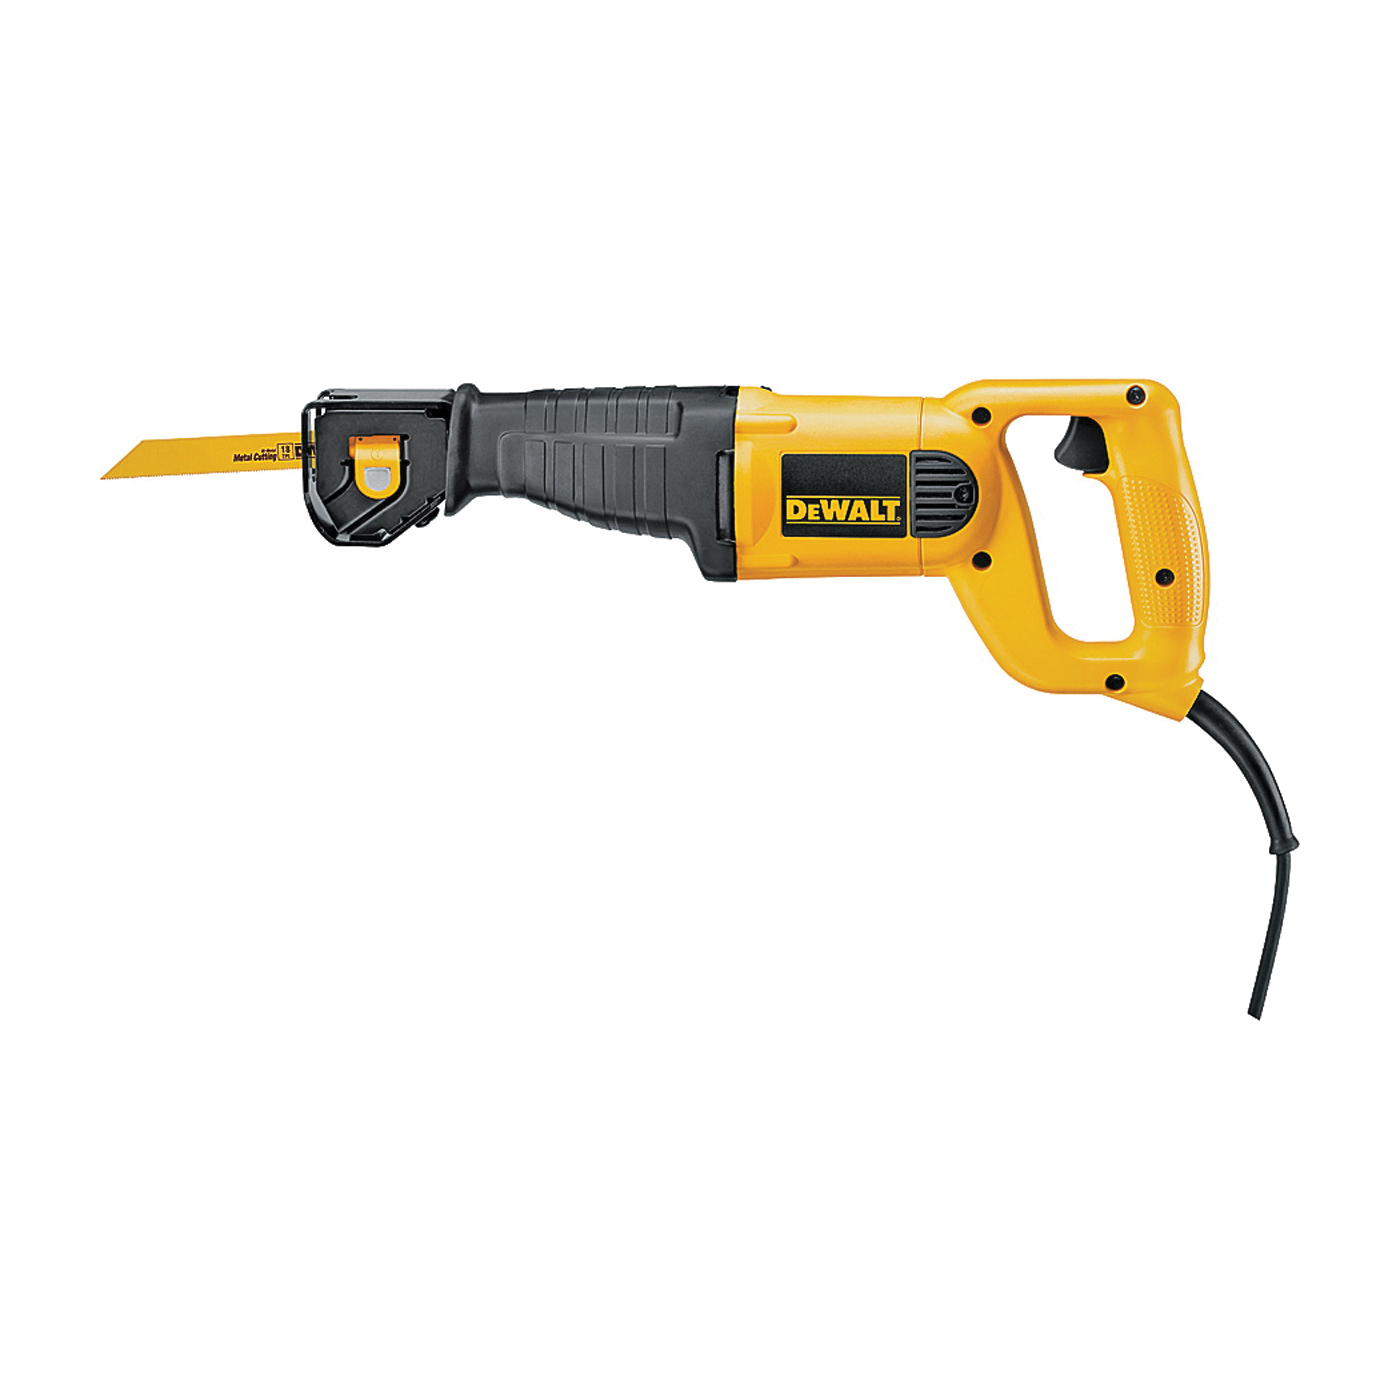 Picture of DeWALT DWE304 Reciprocating Saw, 120 V, 10 A, 1-1/8 in L Stroke, 2800 spm SPM